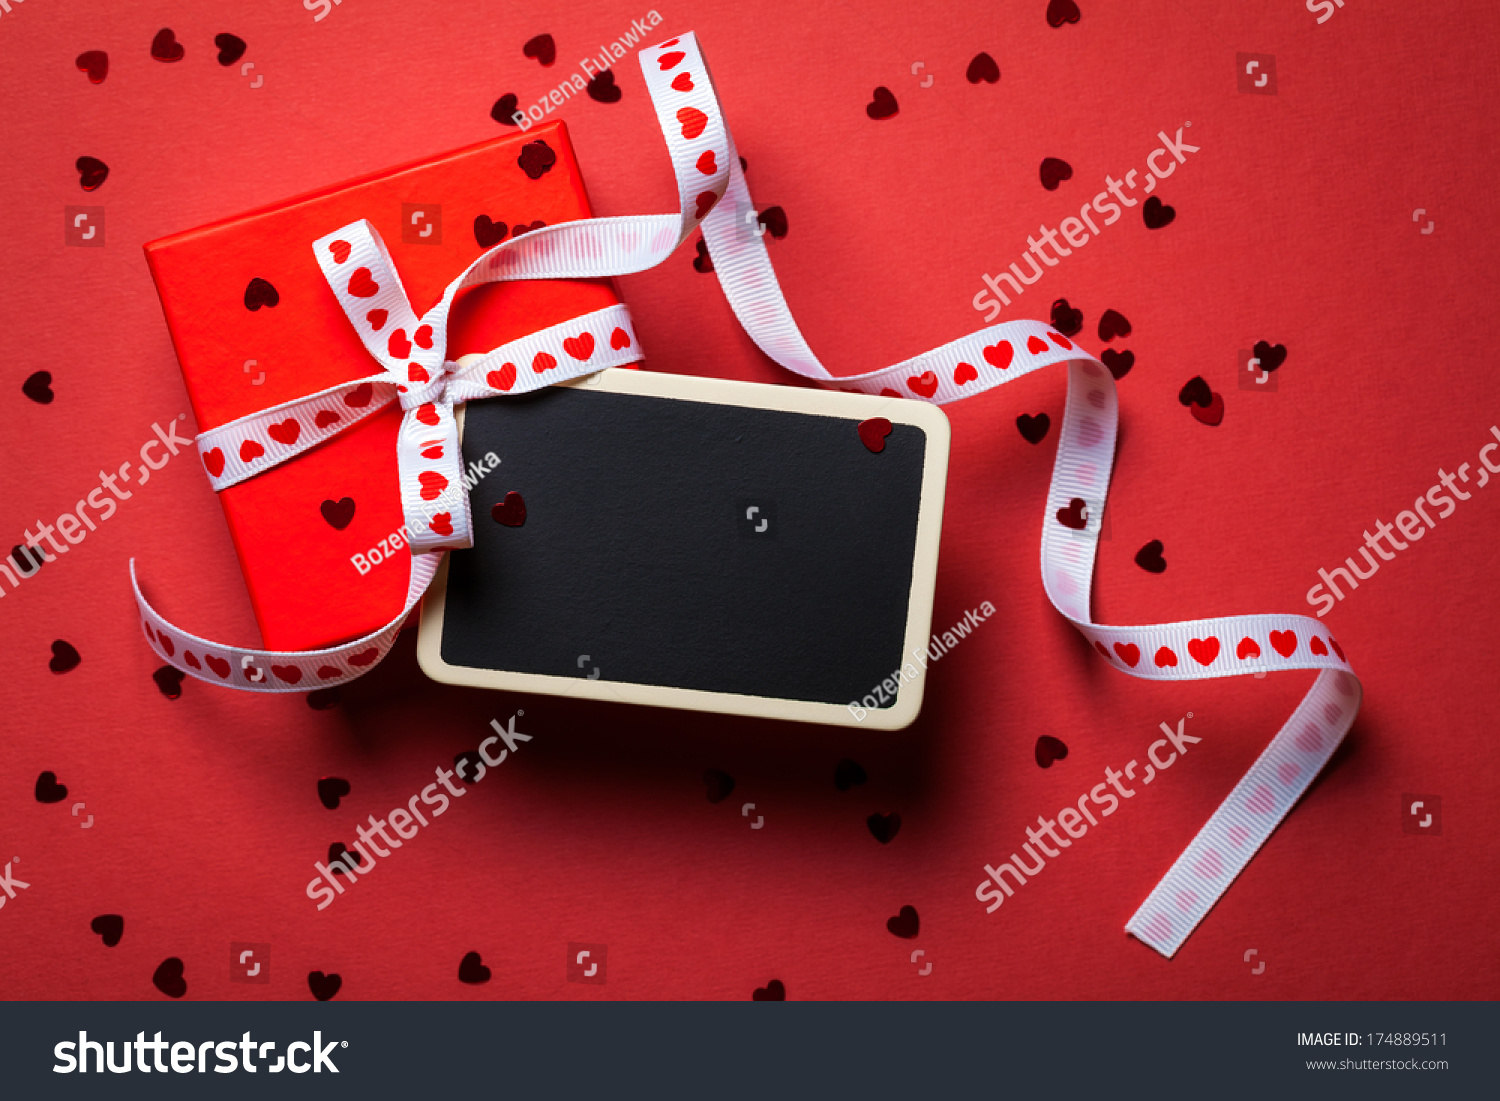 Gift box framed blackboard on red stock photo 174889511 shutterstock gift box with framed blackboard on red paper background valentines day top view negle Choice Image